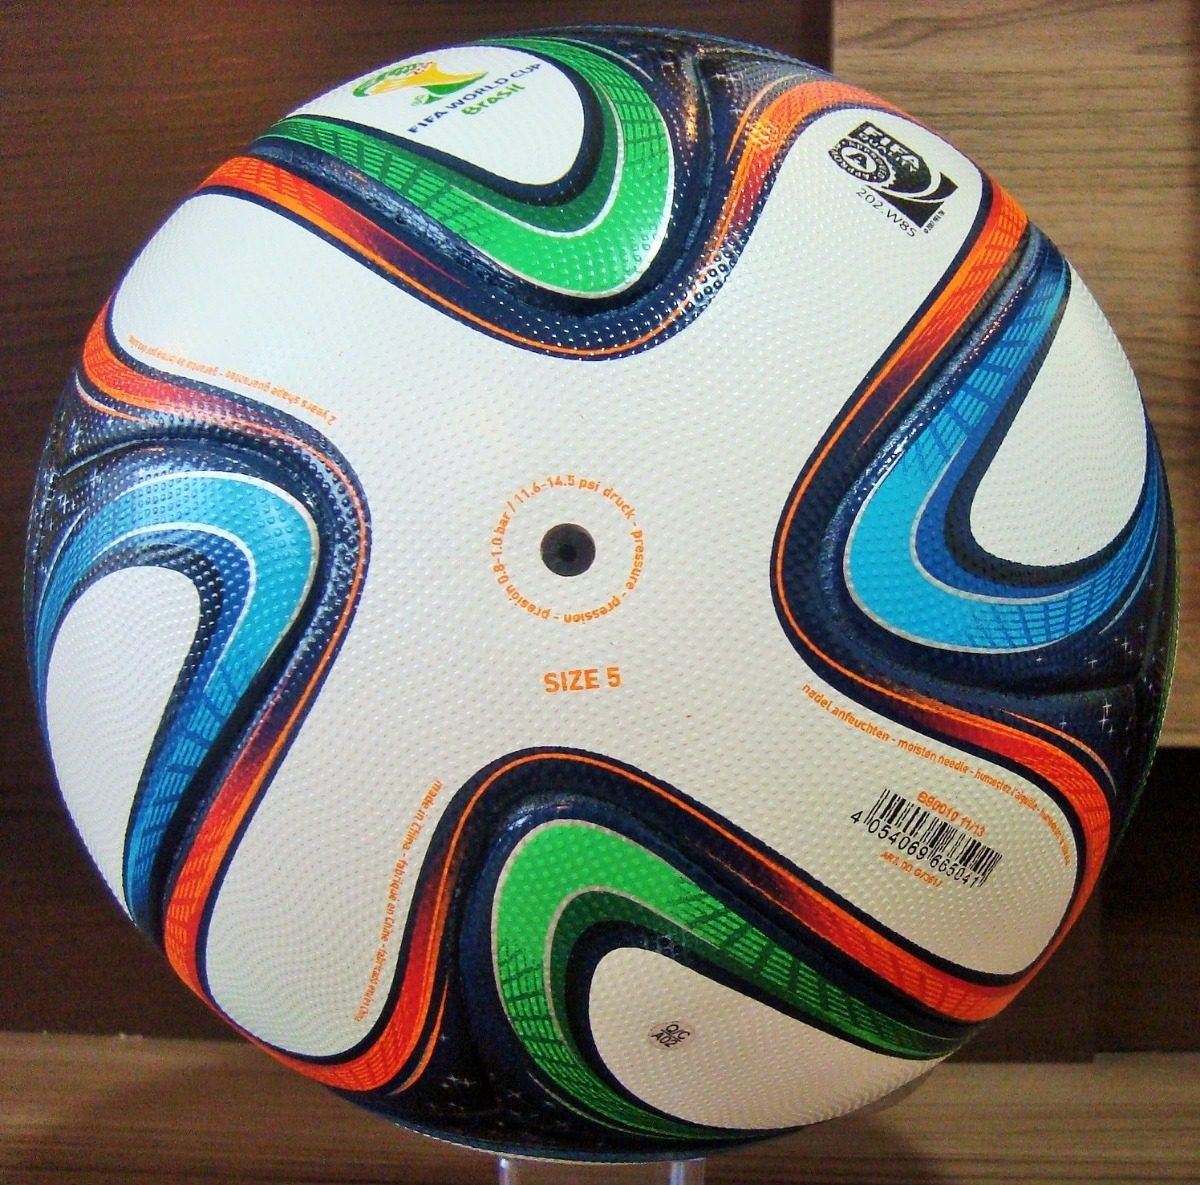 bola adidas brazuca da copa 2014 official match ball. Carregando zoom. 7aa742415feee